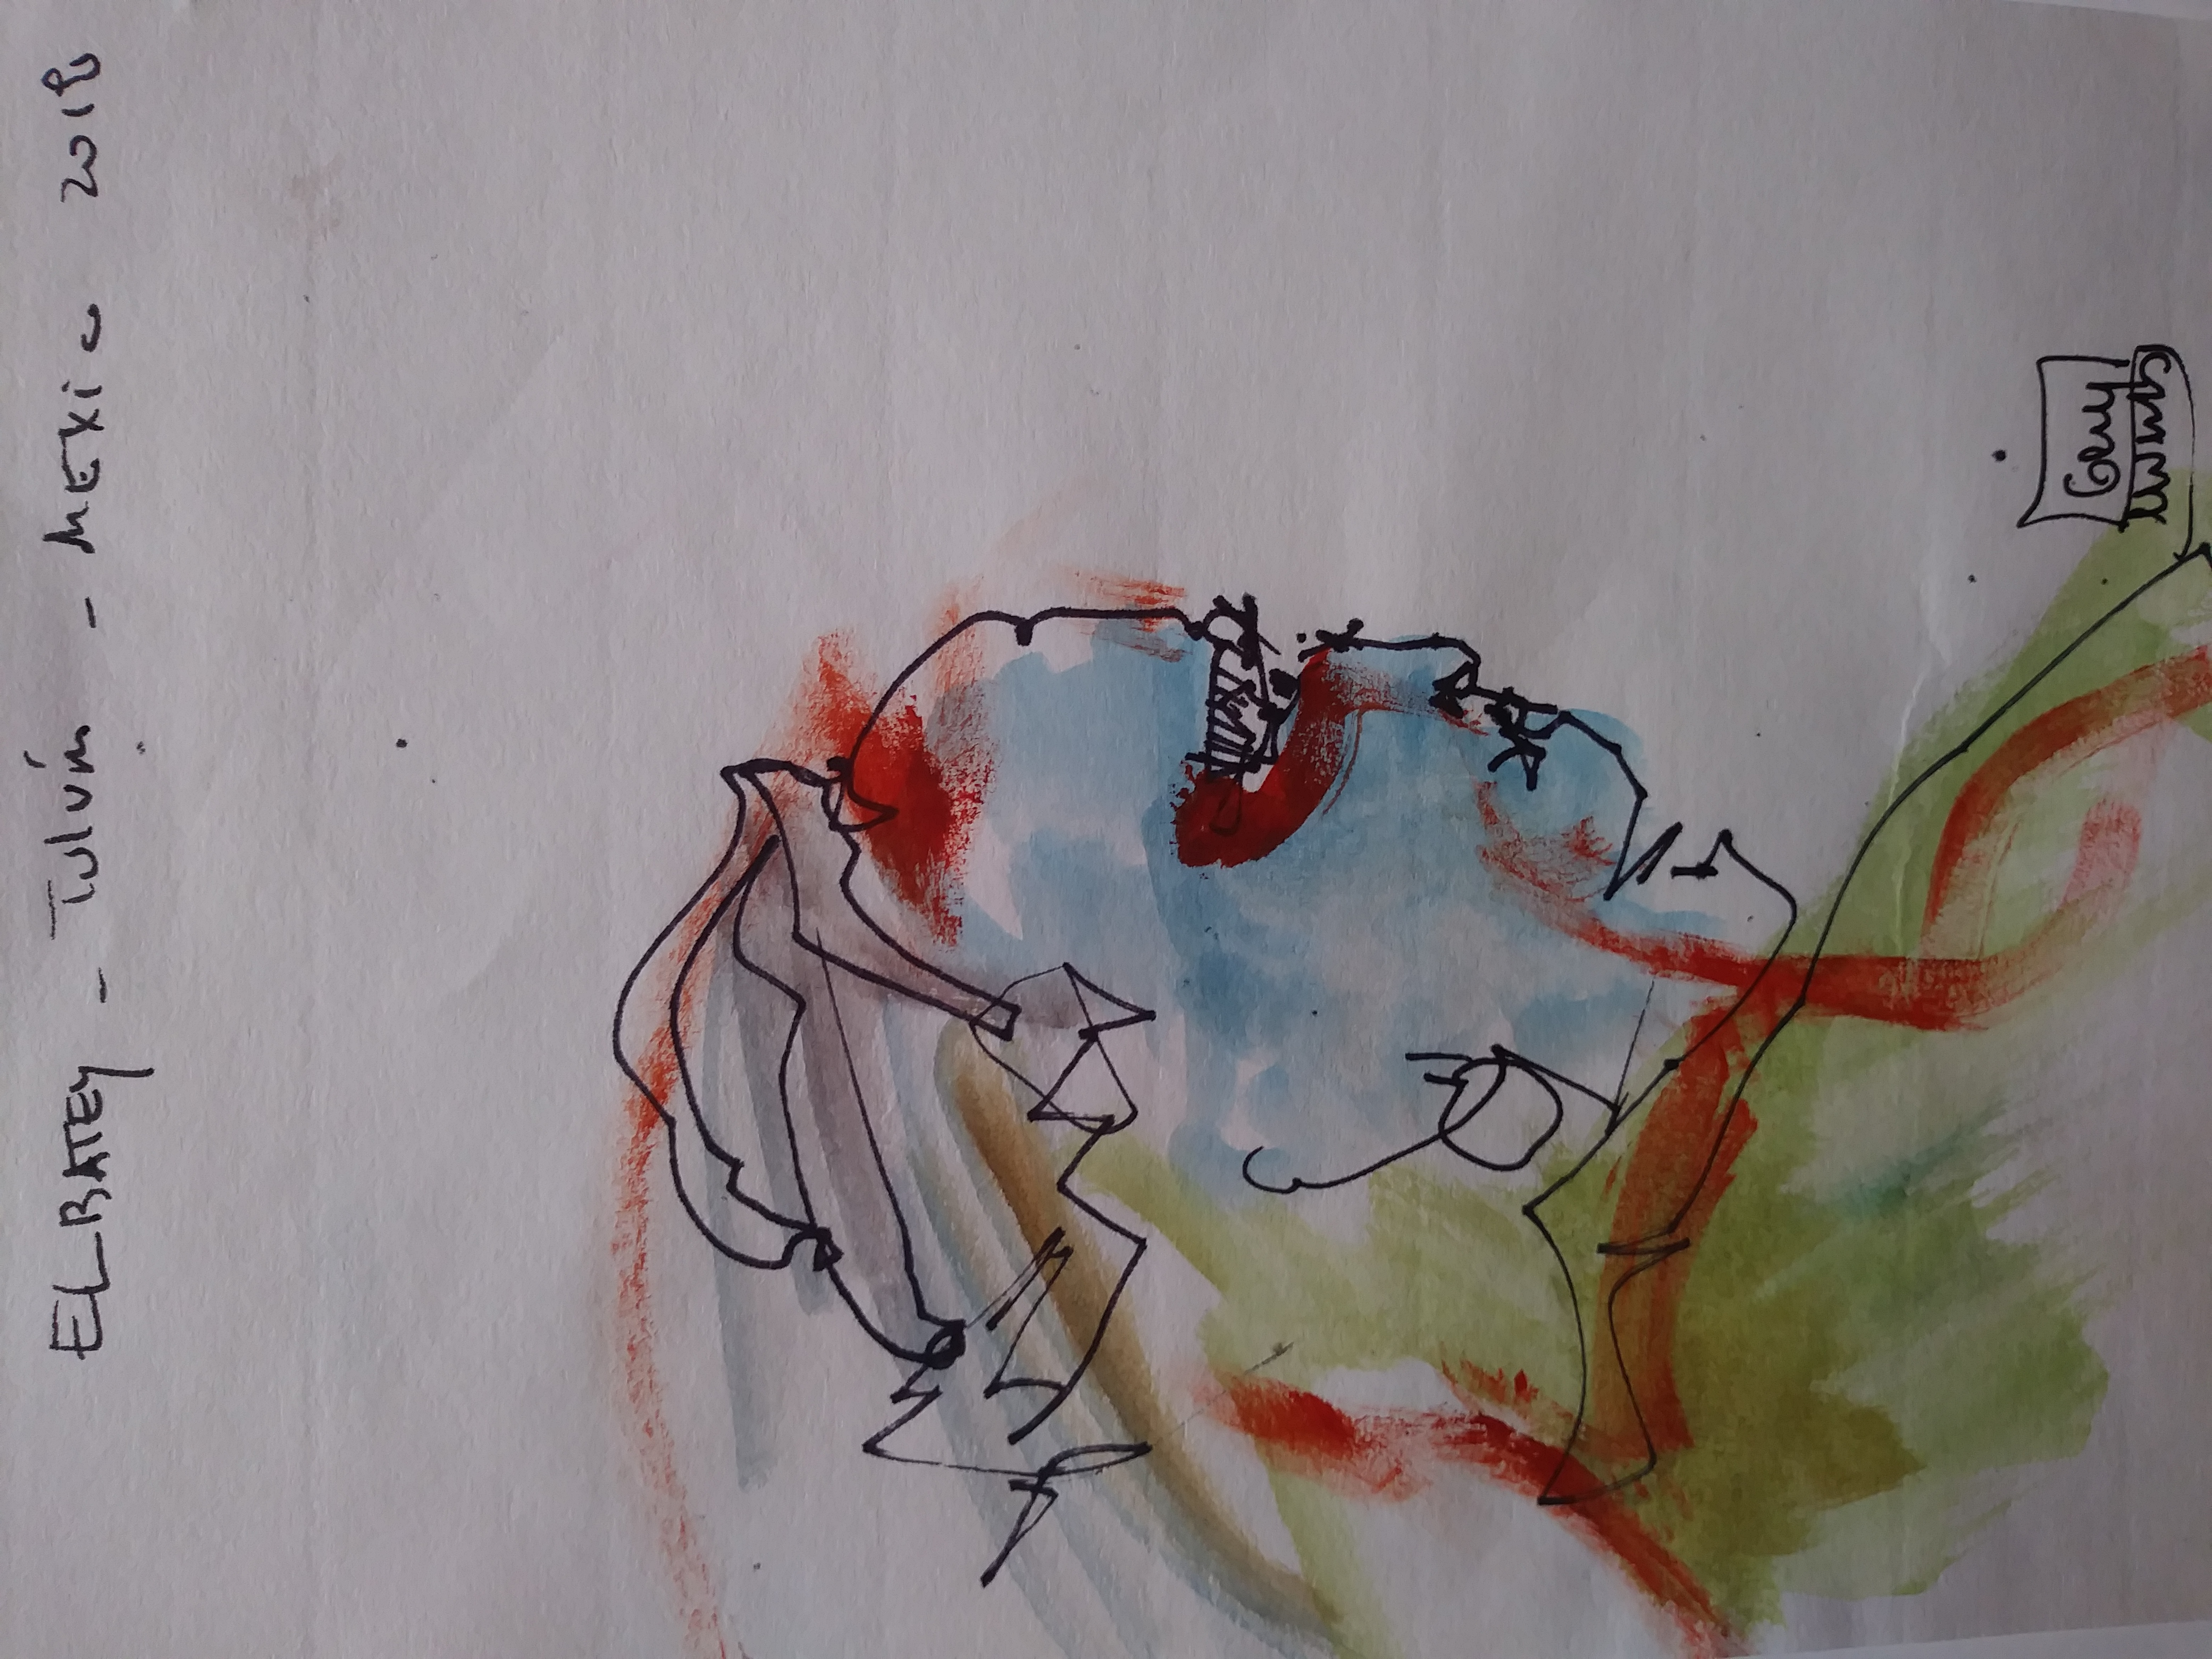 Untitled. Drawing Mixed Media on pap